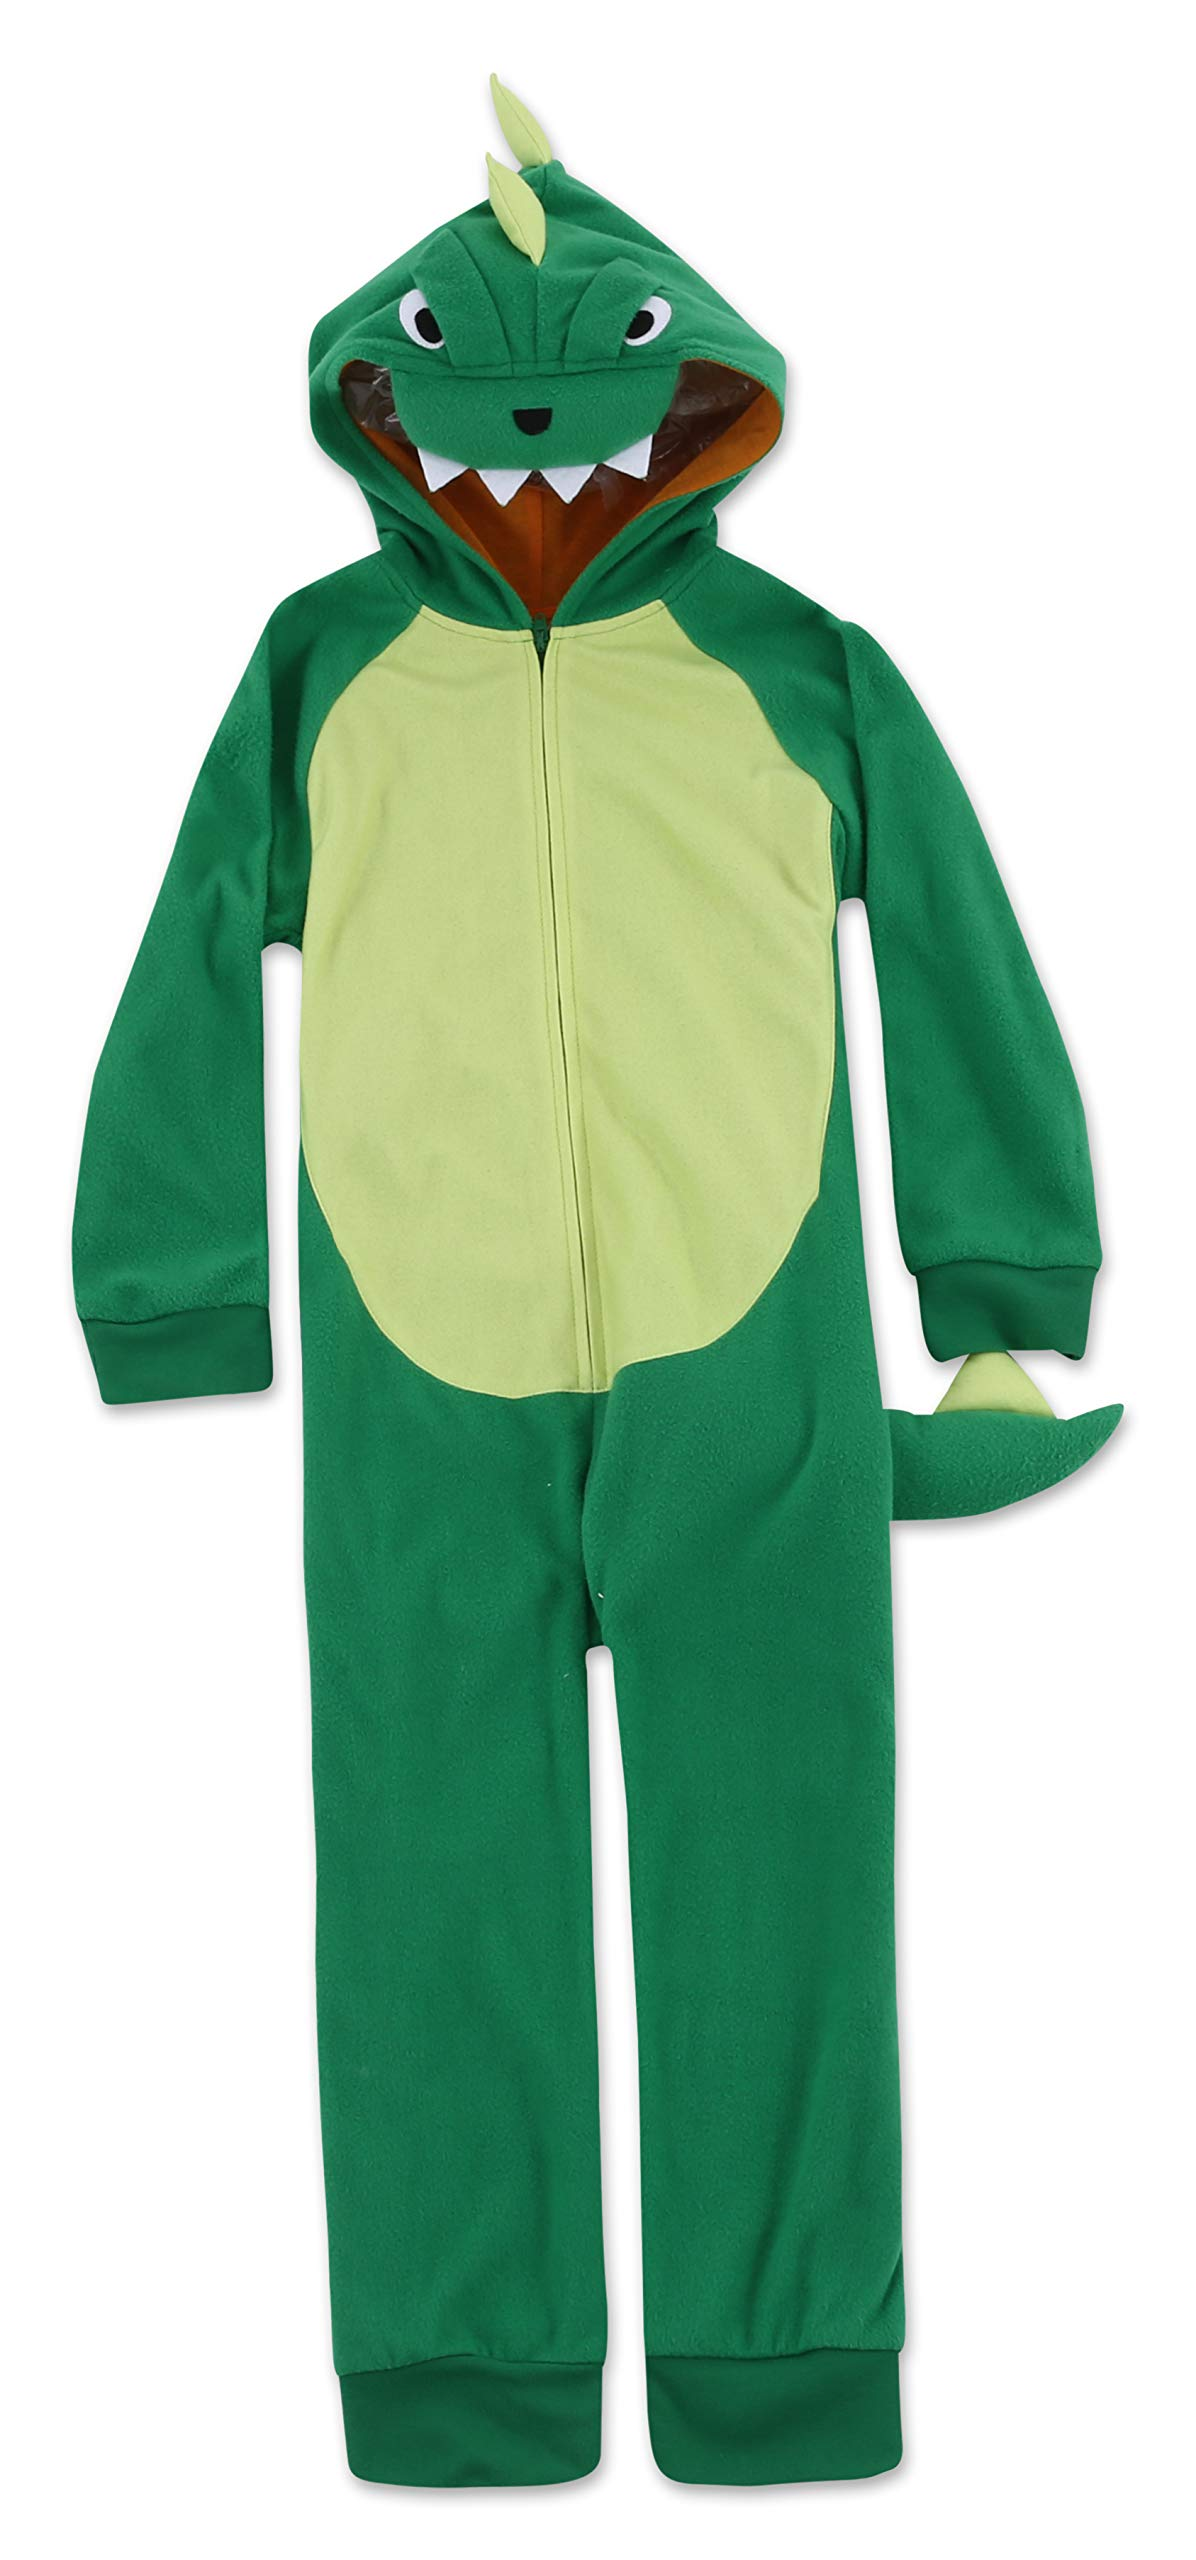 Dreamwave Toddler Boy Dinosaur Blanket Sleeper Onesie Pajamas 2T Green by Dreamwave